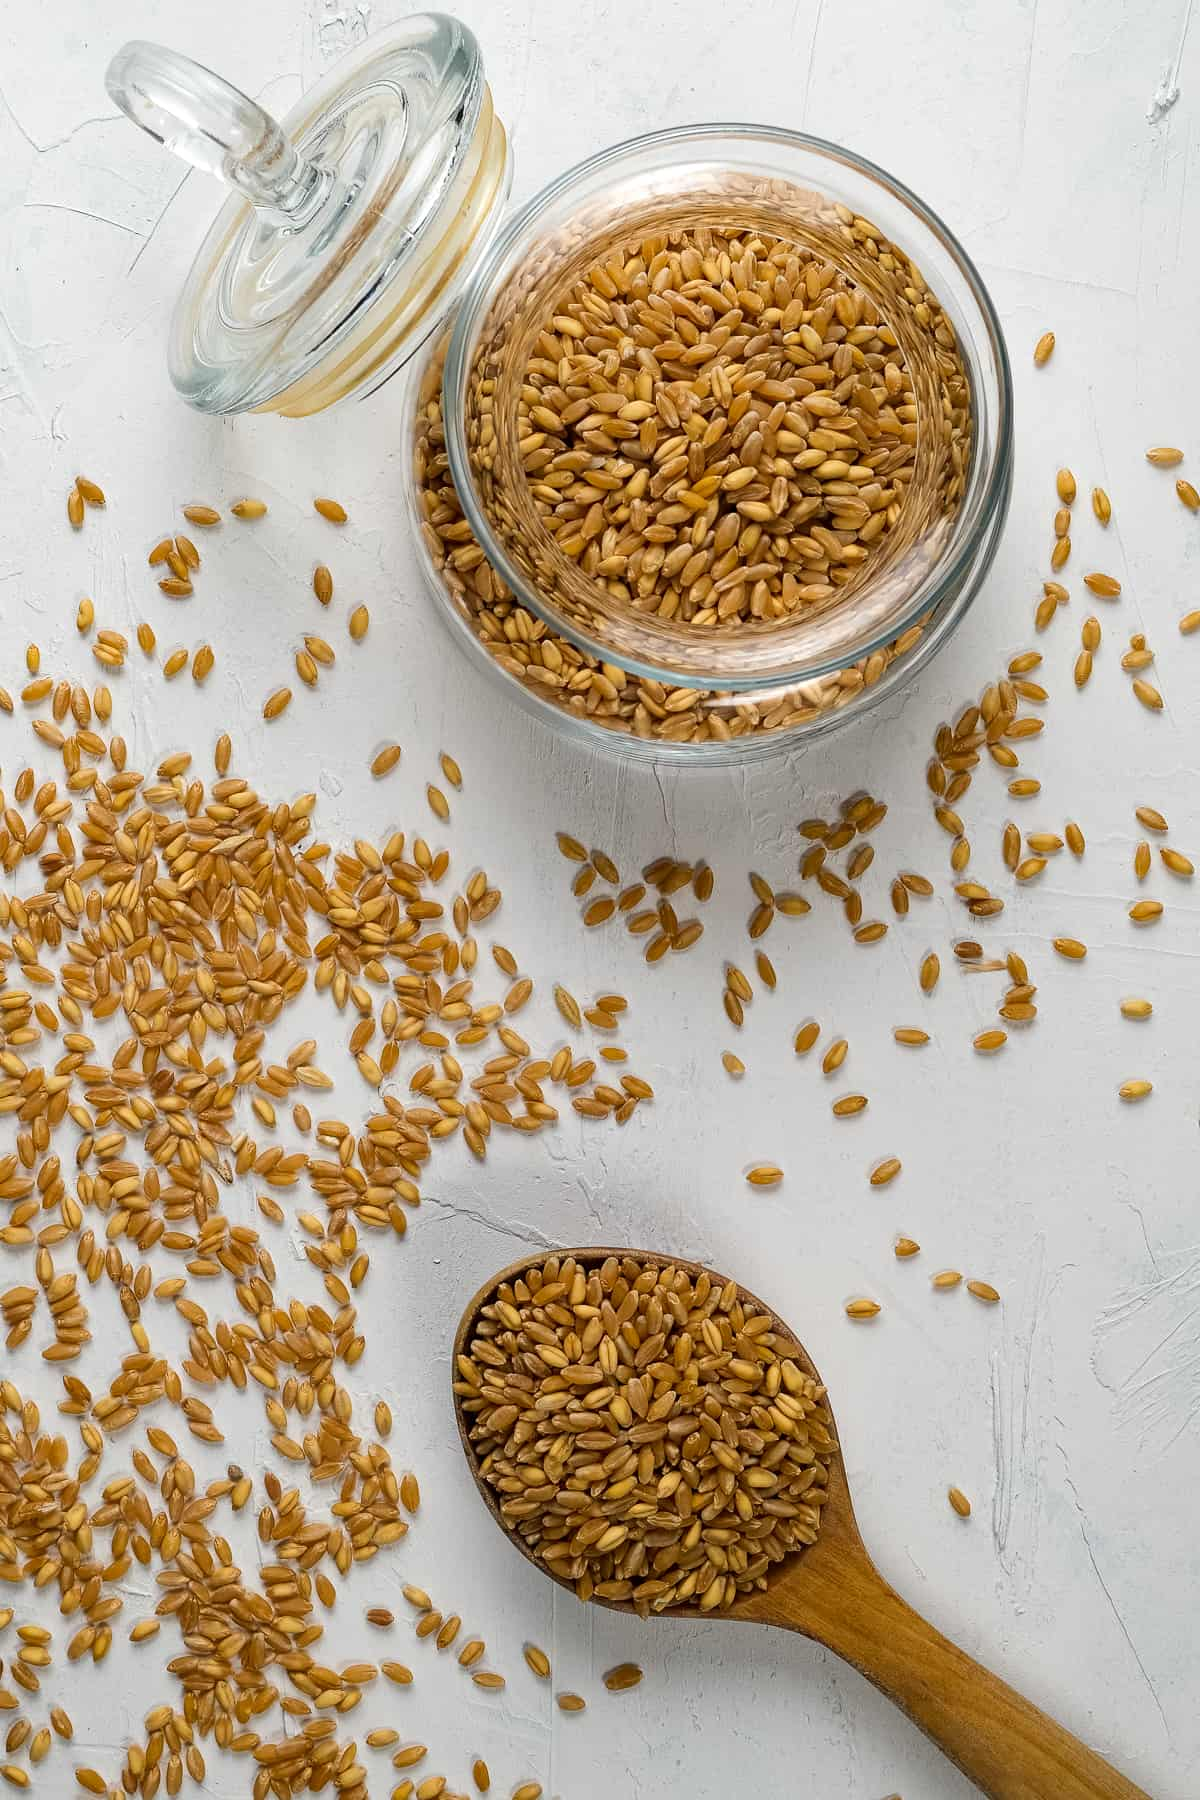 Red wheat berries in a glass jar, lid open and in a wooden spoon on a white background.